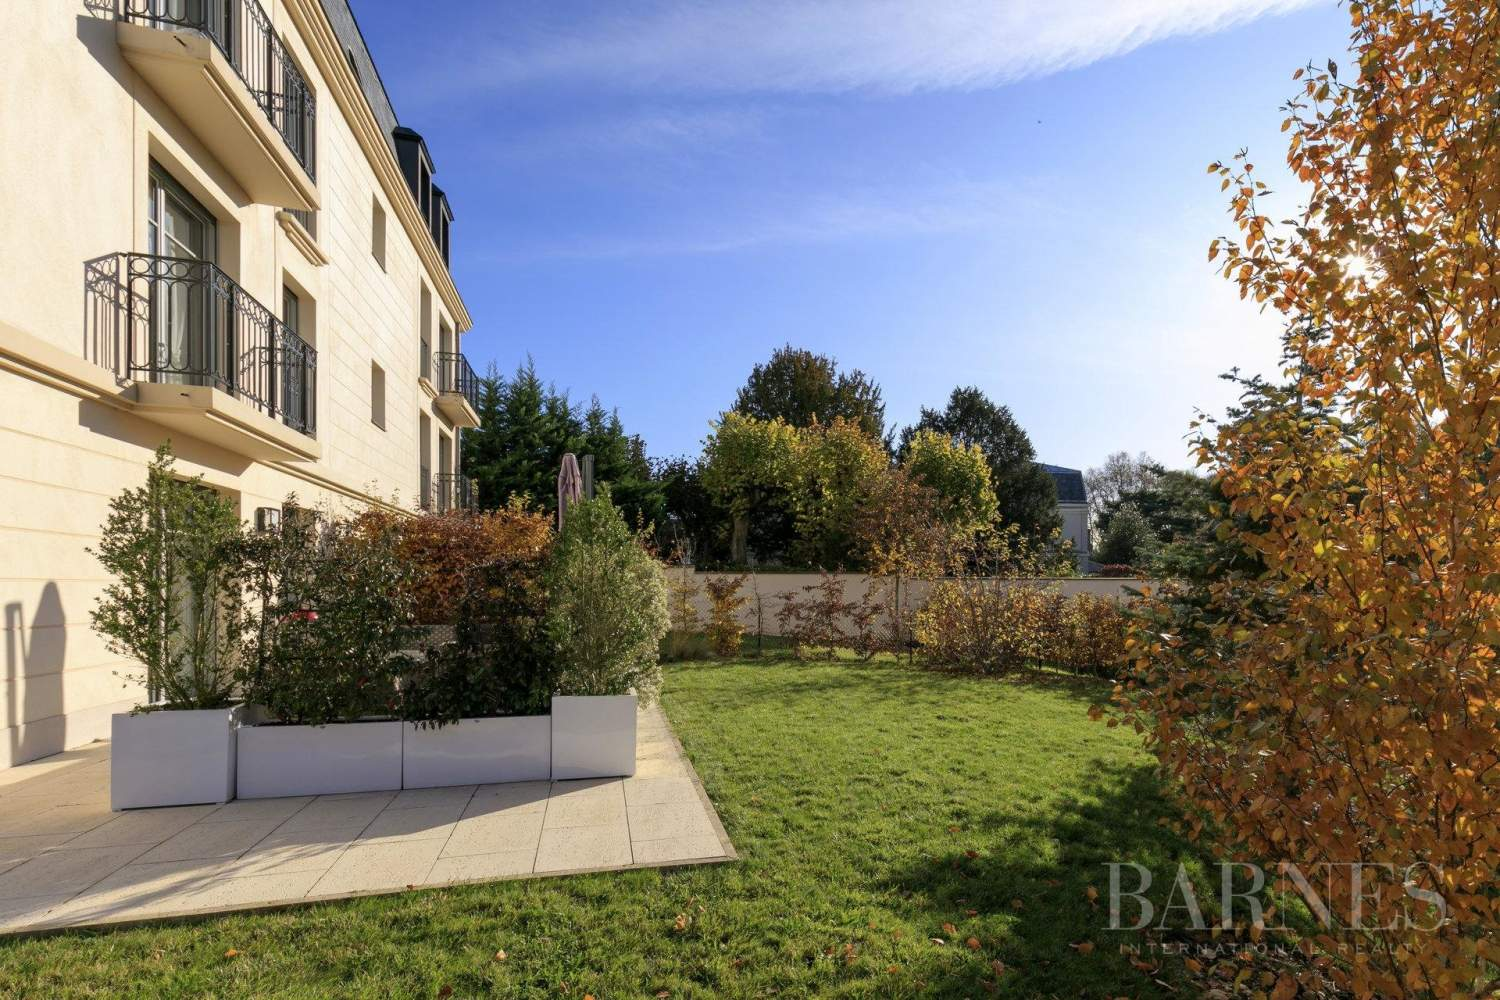 Versailles Ermitage - 95m² (1,022 sq ft) apartment, 4 rooms with a private 145m² (1,560 sq ft) garden picture 1